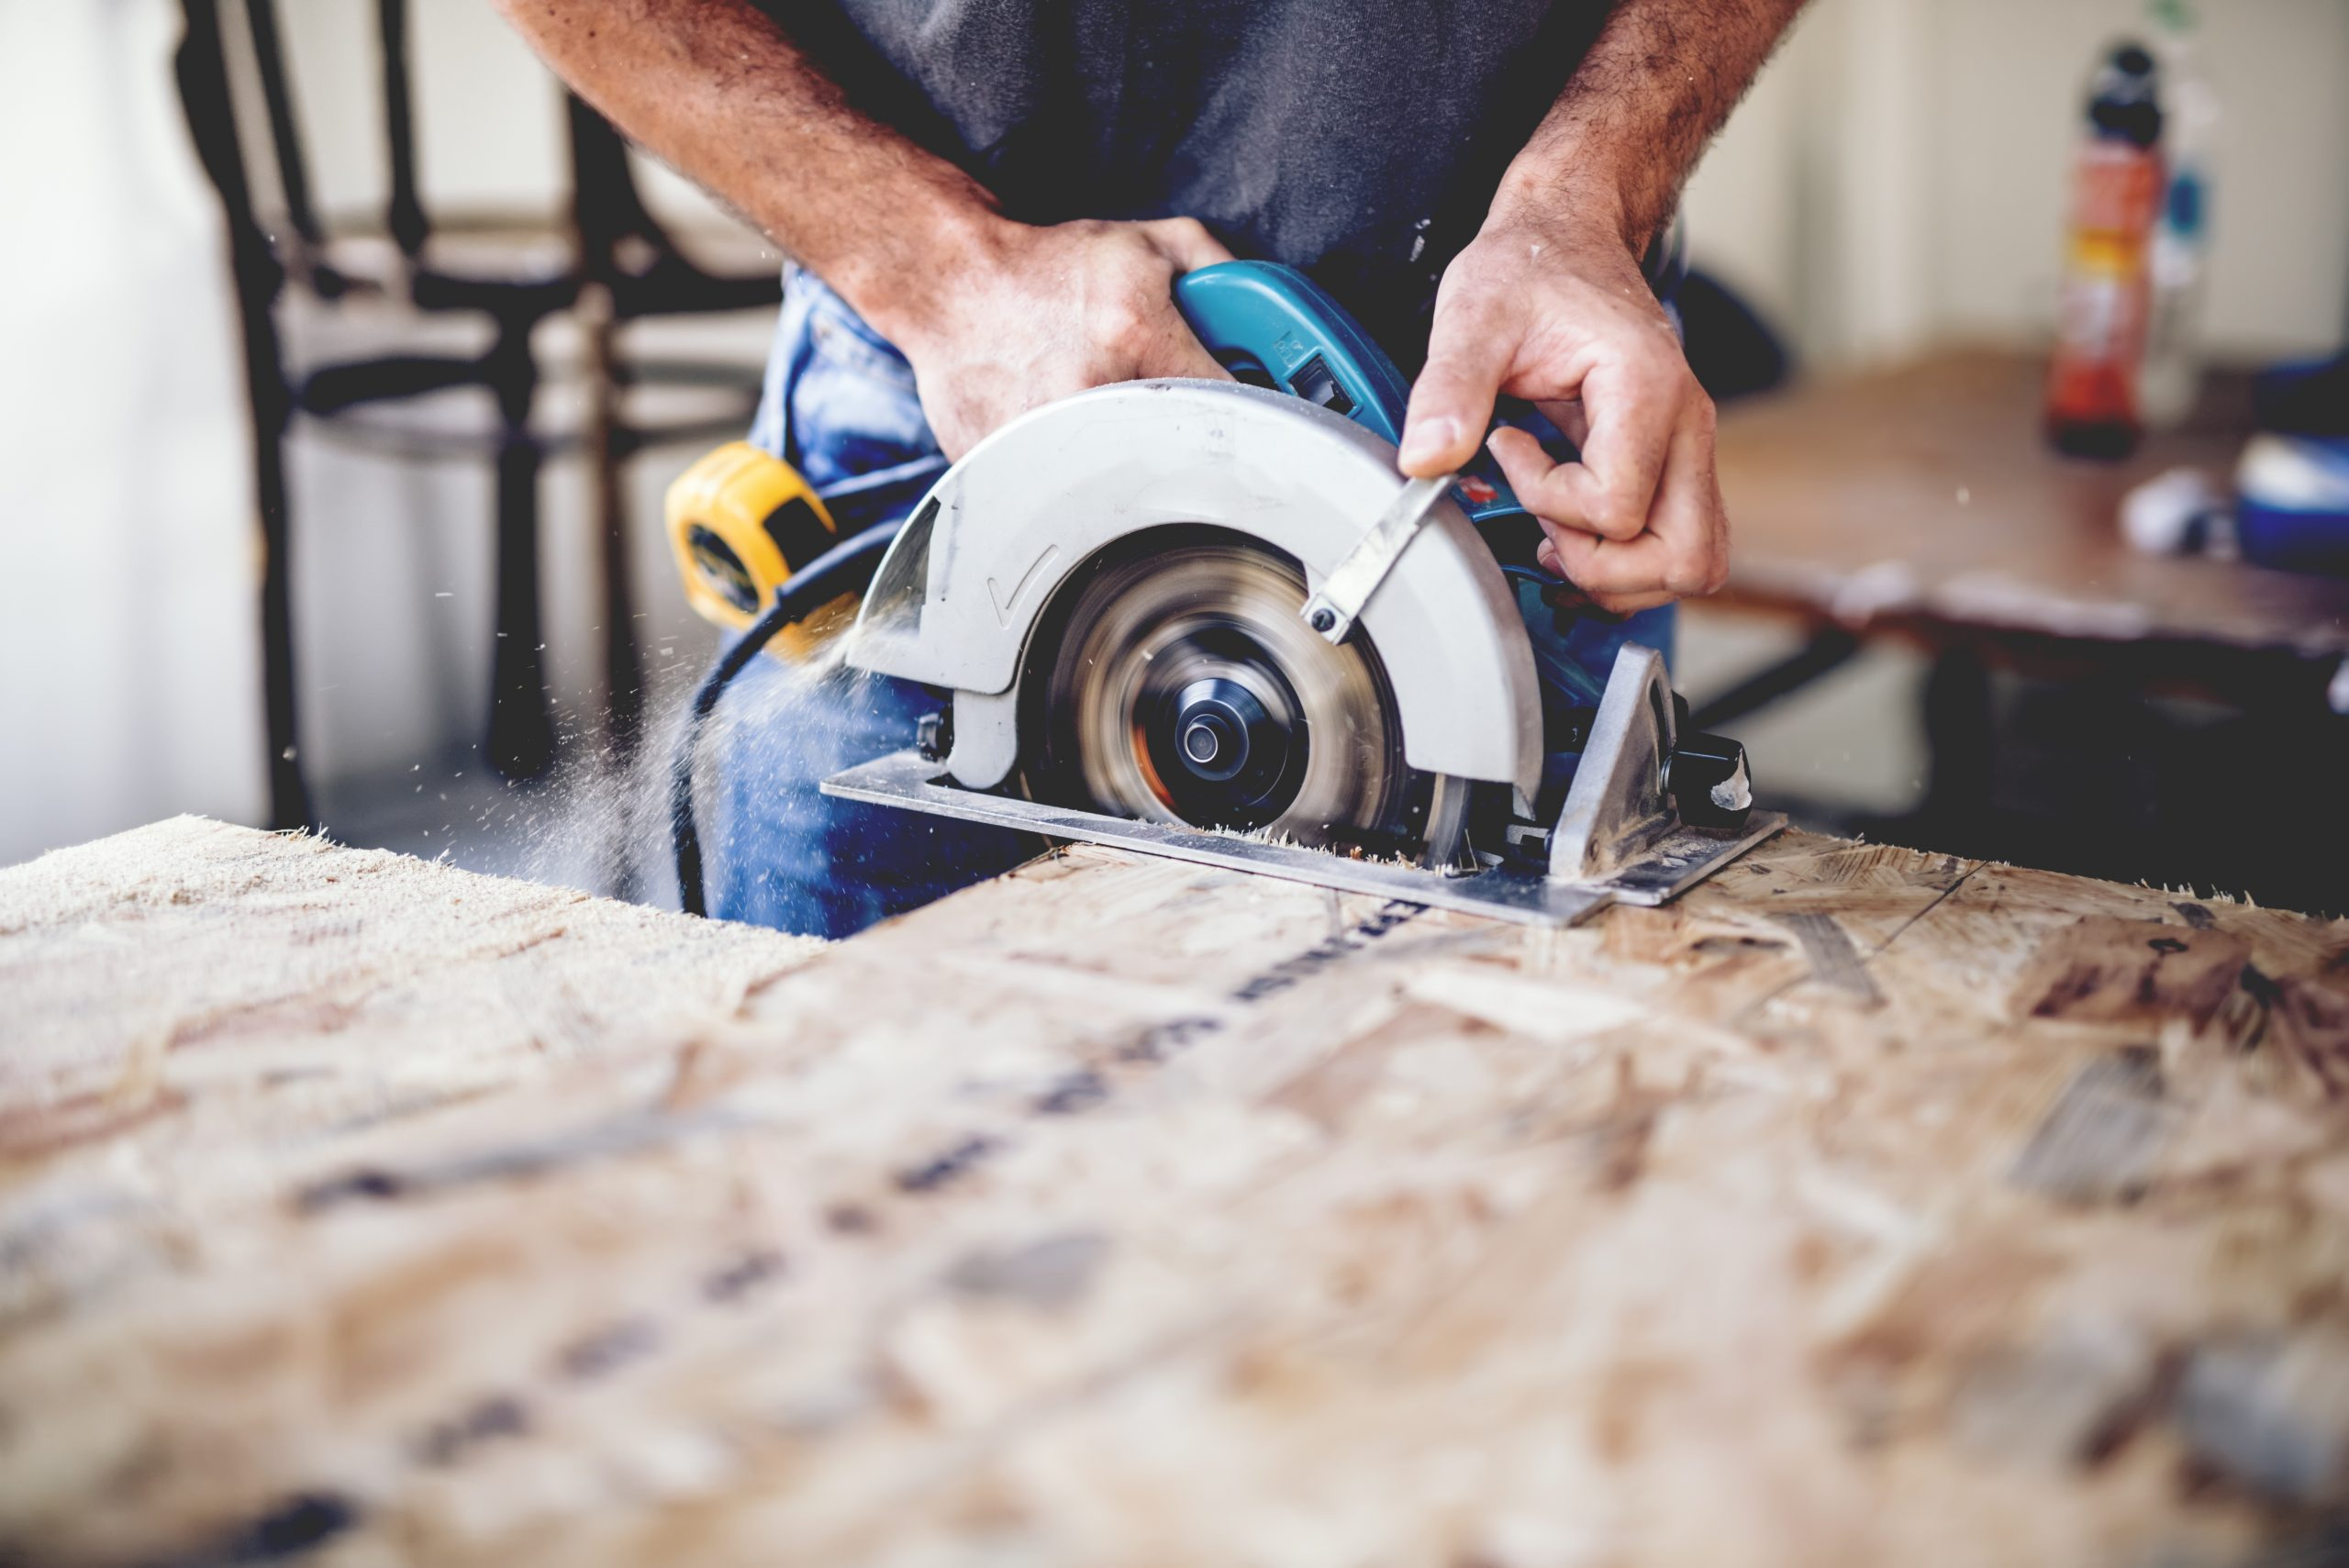 Carpenter using circular saw for cutting wooden boards. Construction details of male worker or handy man with power tools winnipeg